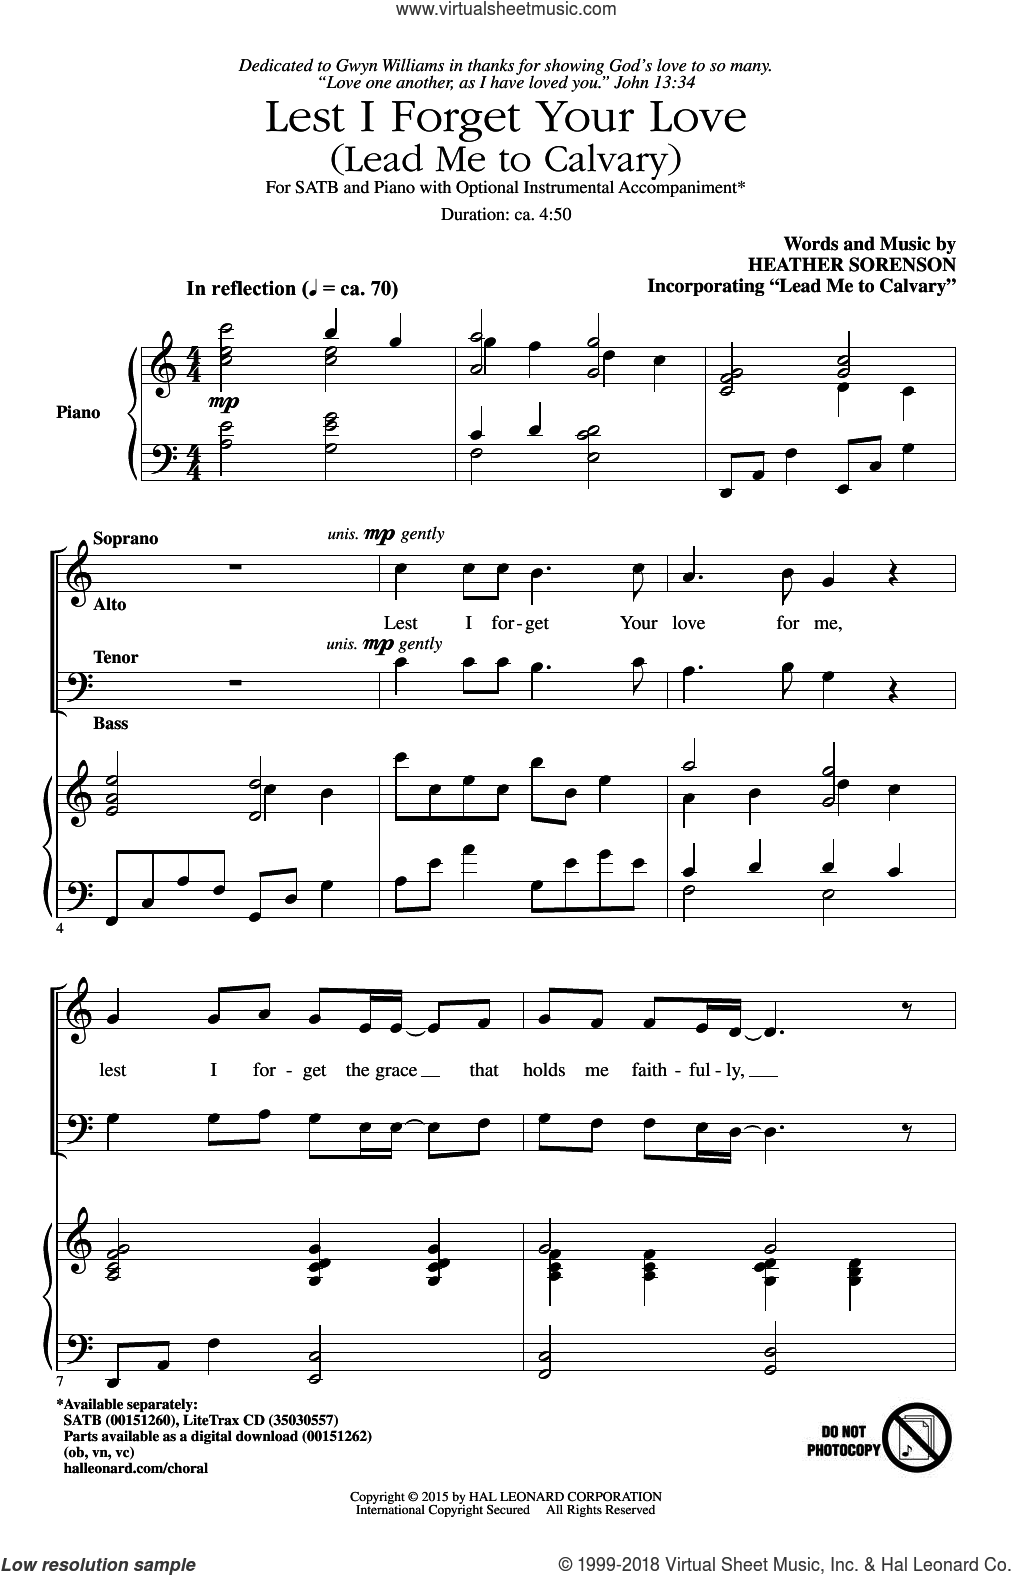 Lest I Forget Your Love (Lead Me To Calvary) sheet music for choir (SATB: soprano, alto, tenor, bass) by Heather Sorenson, intermediate skill level